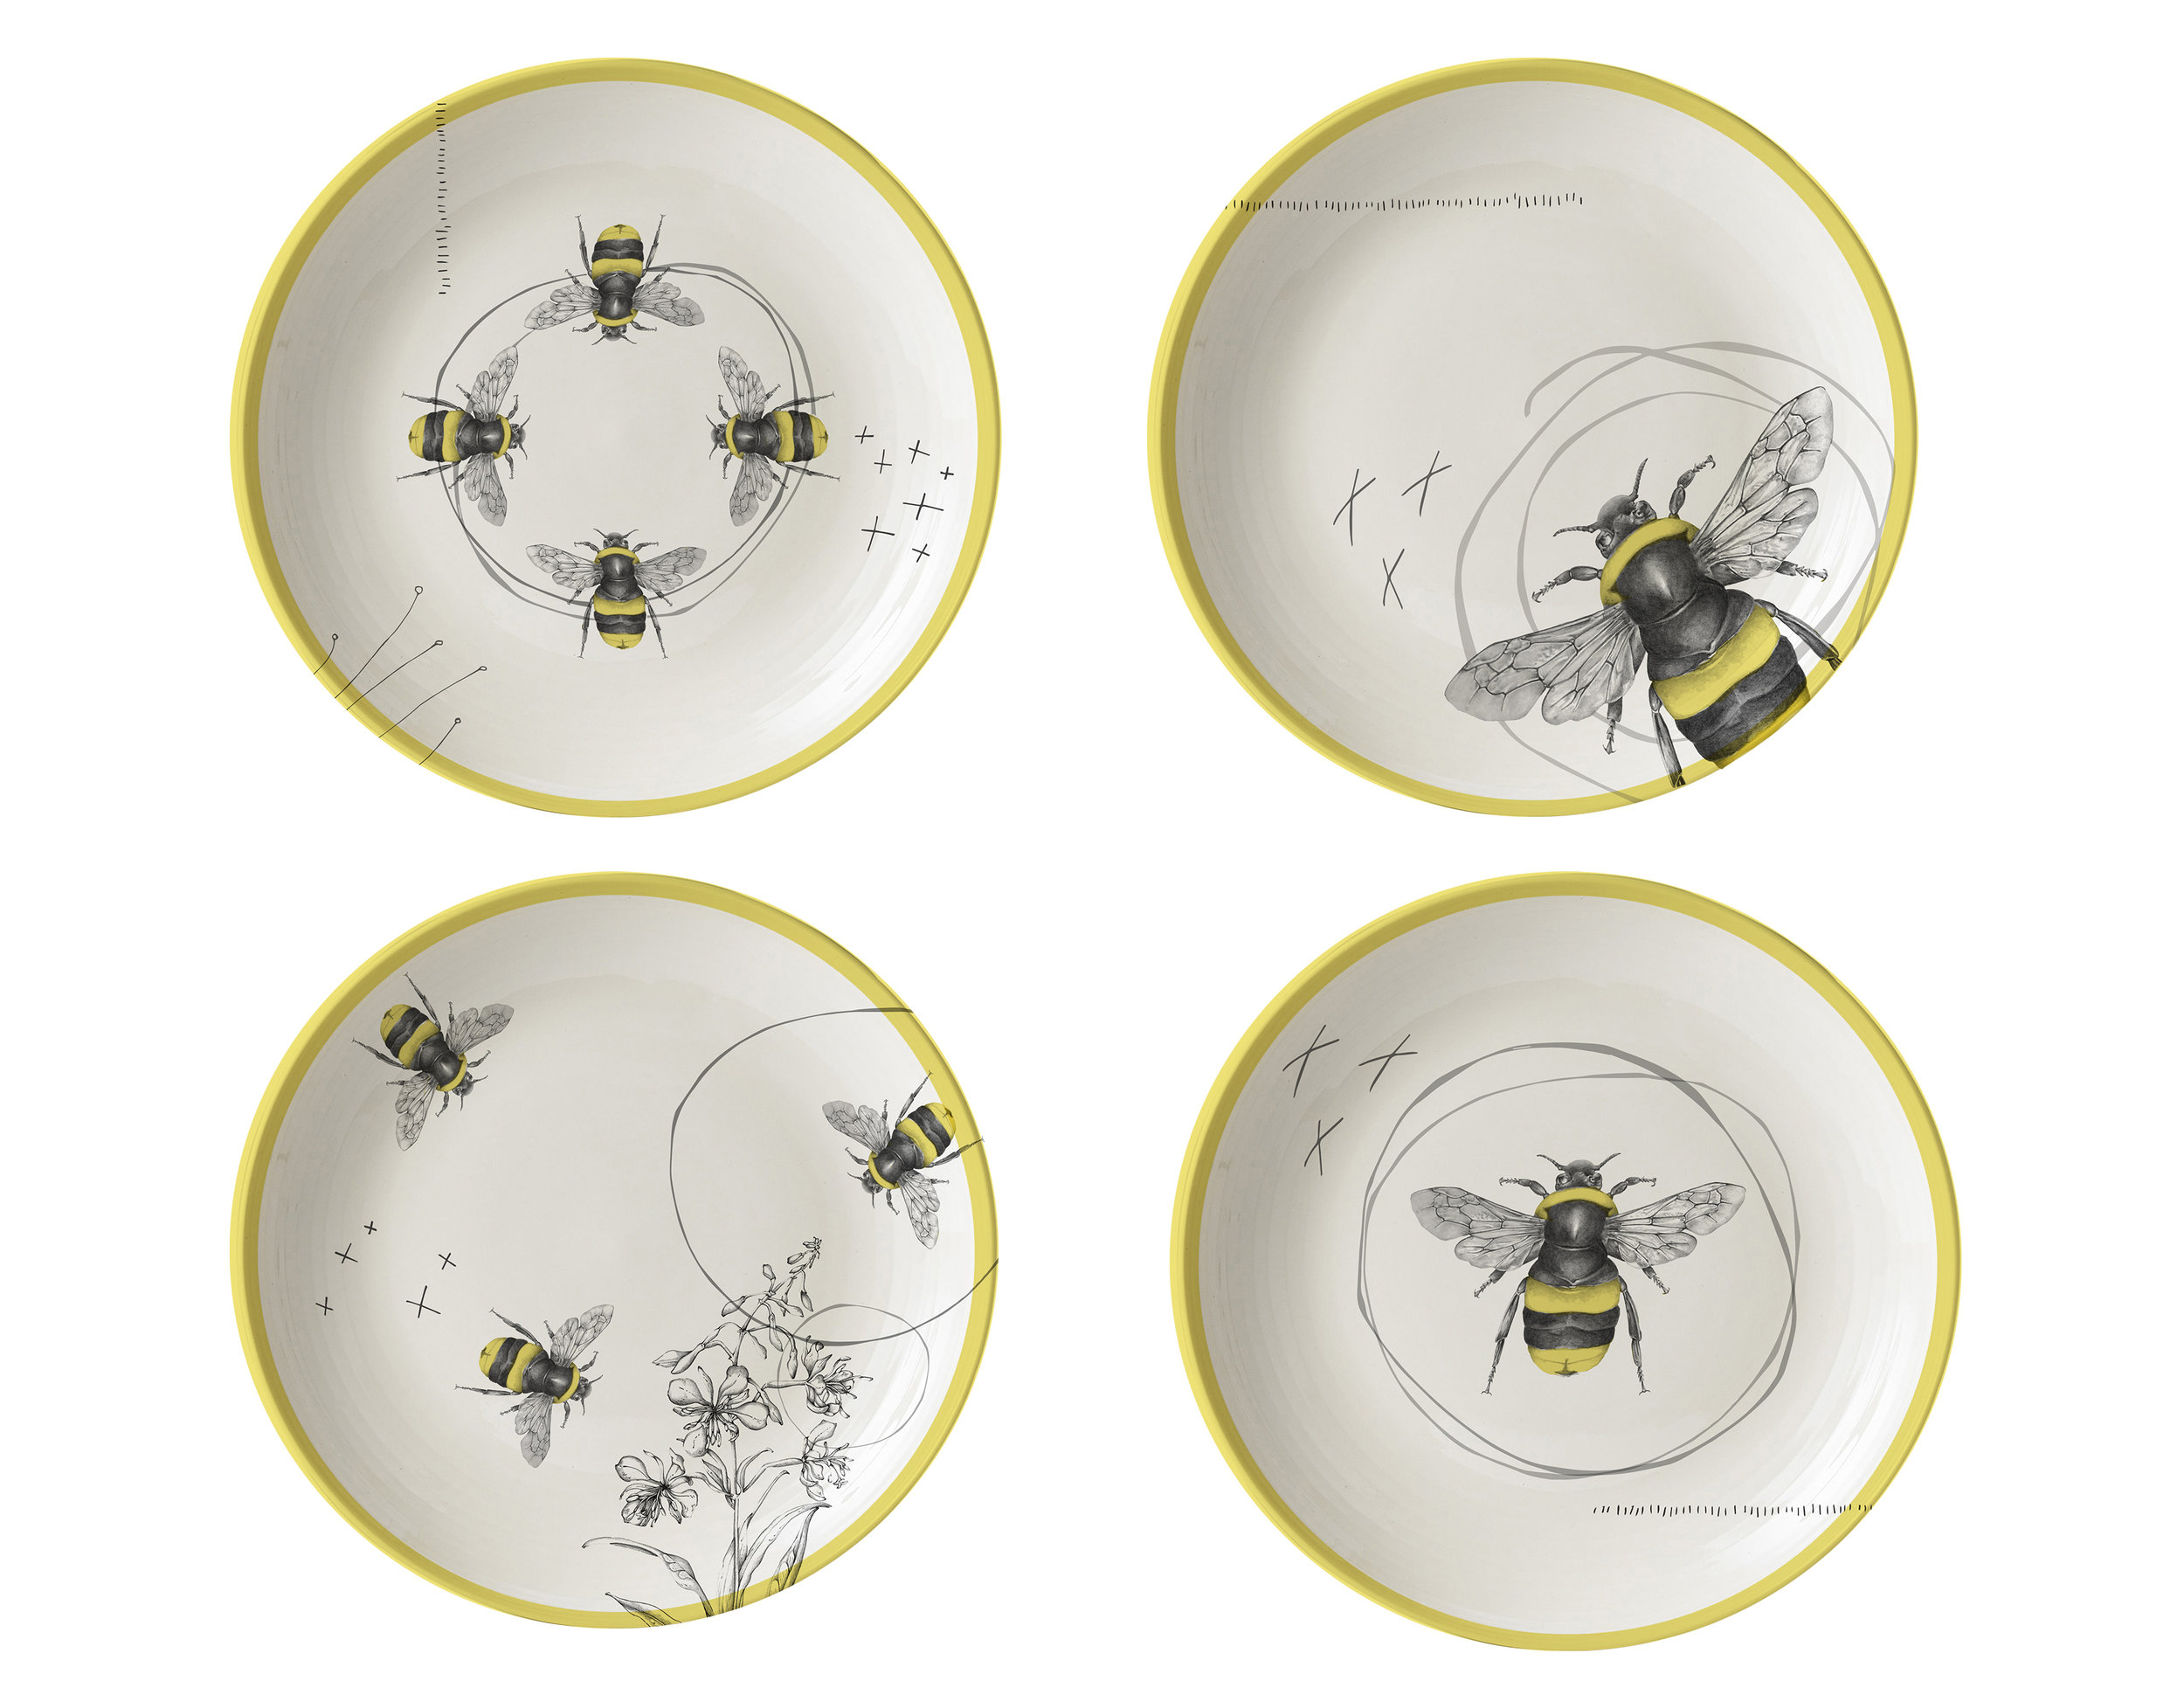 CA HI New Bee Appetizer plates.jpg